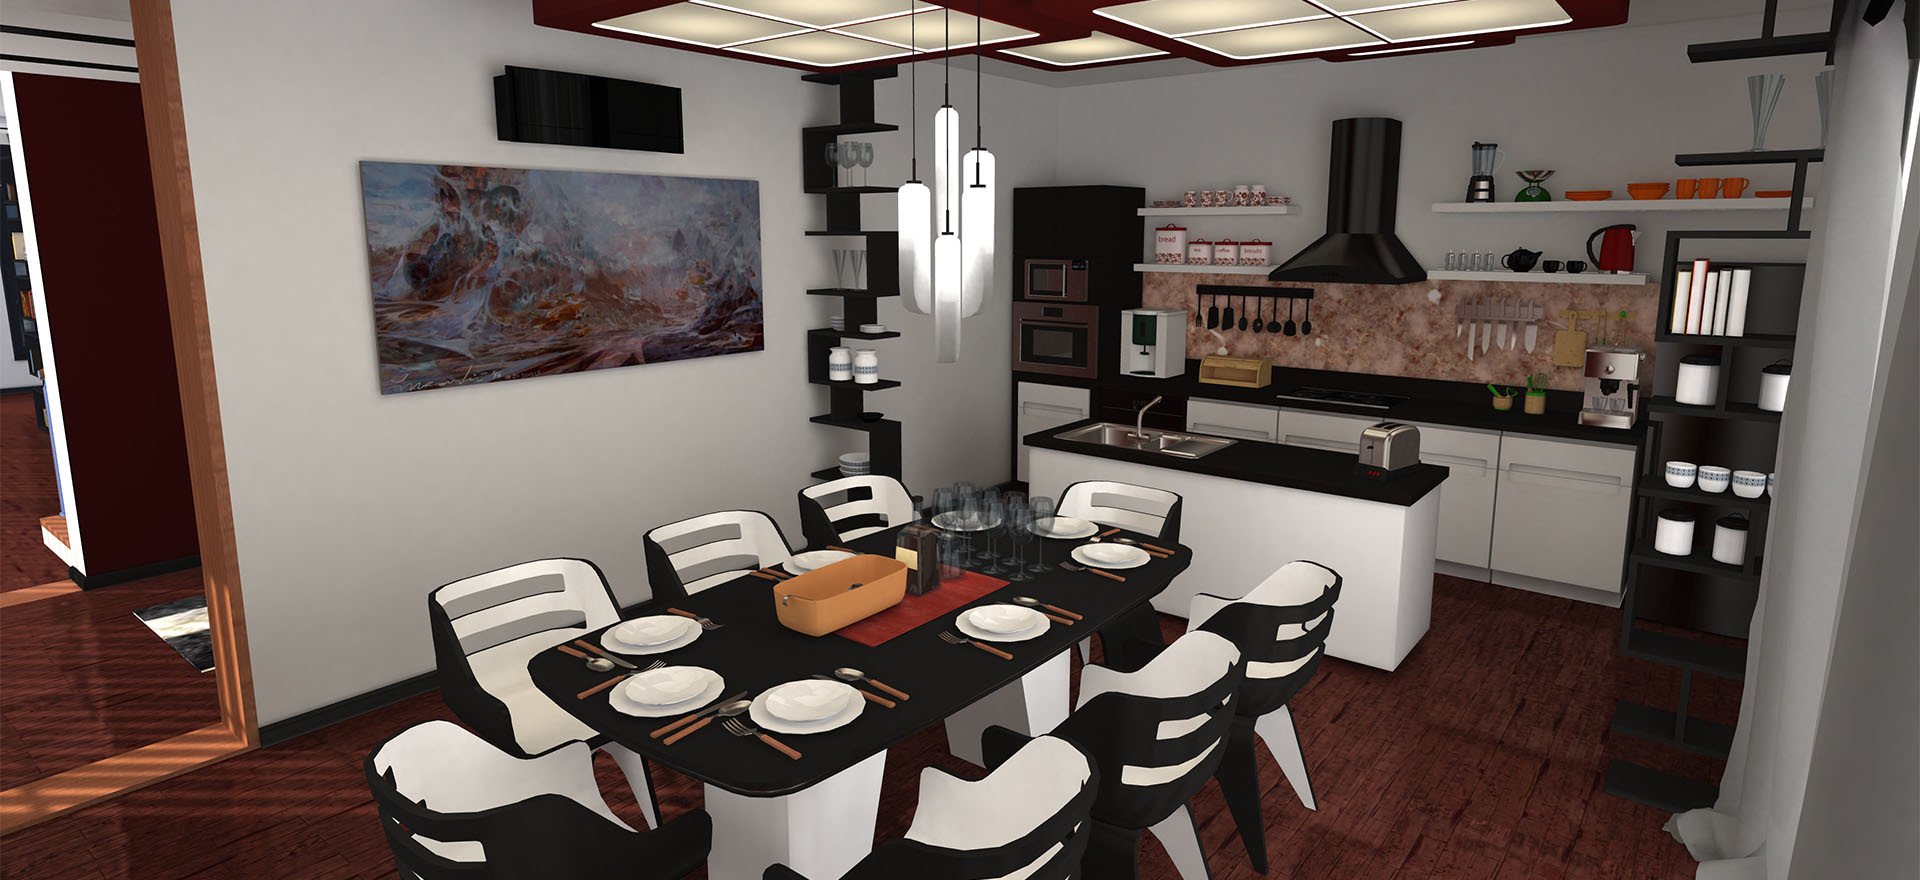 Kitchen and diningroom